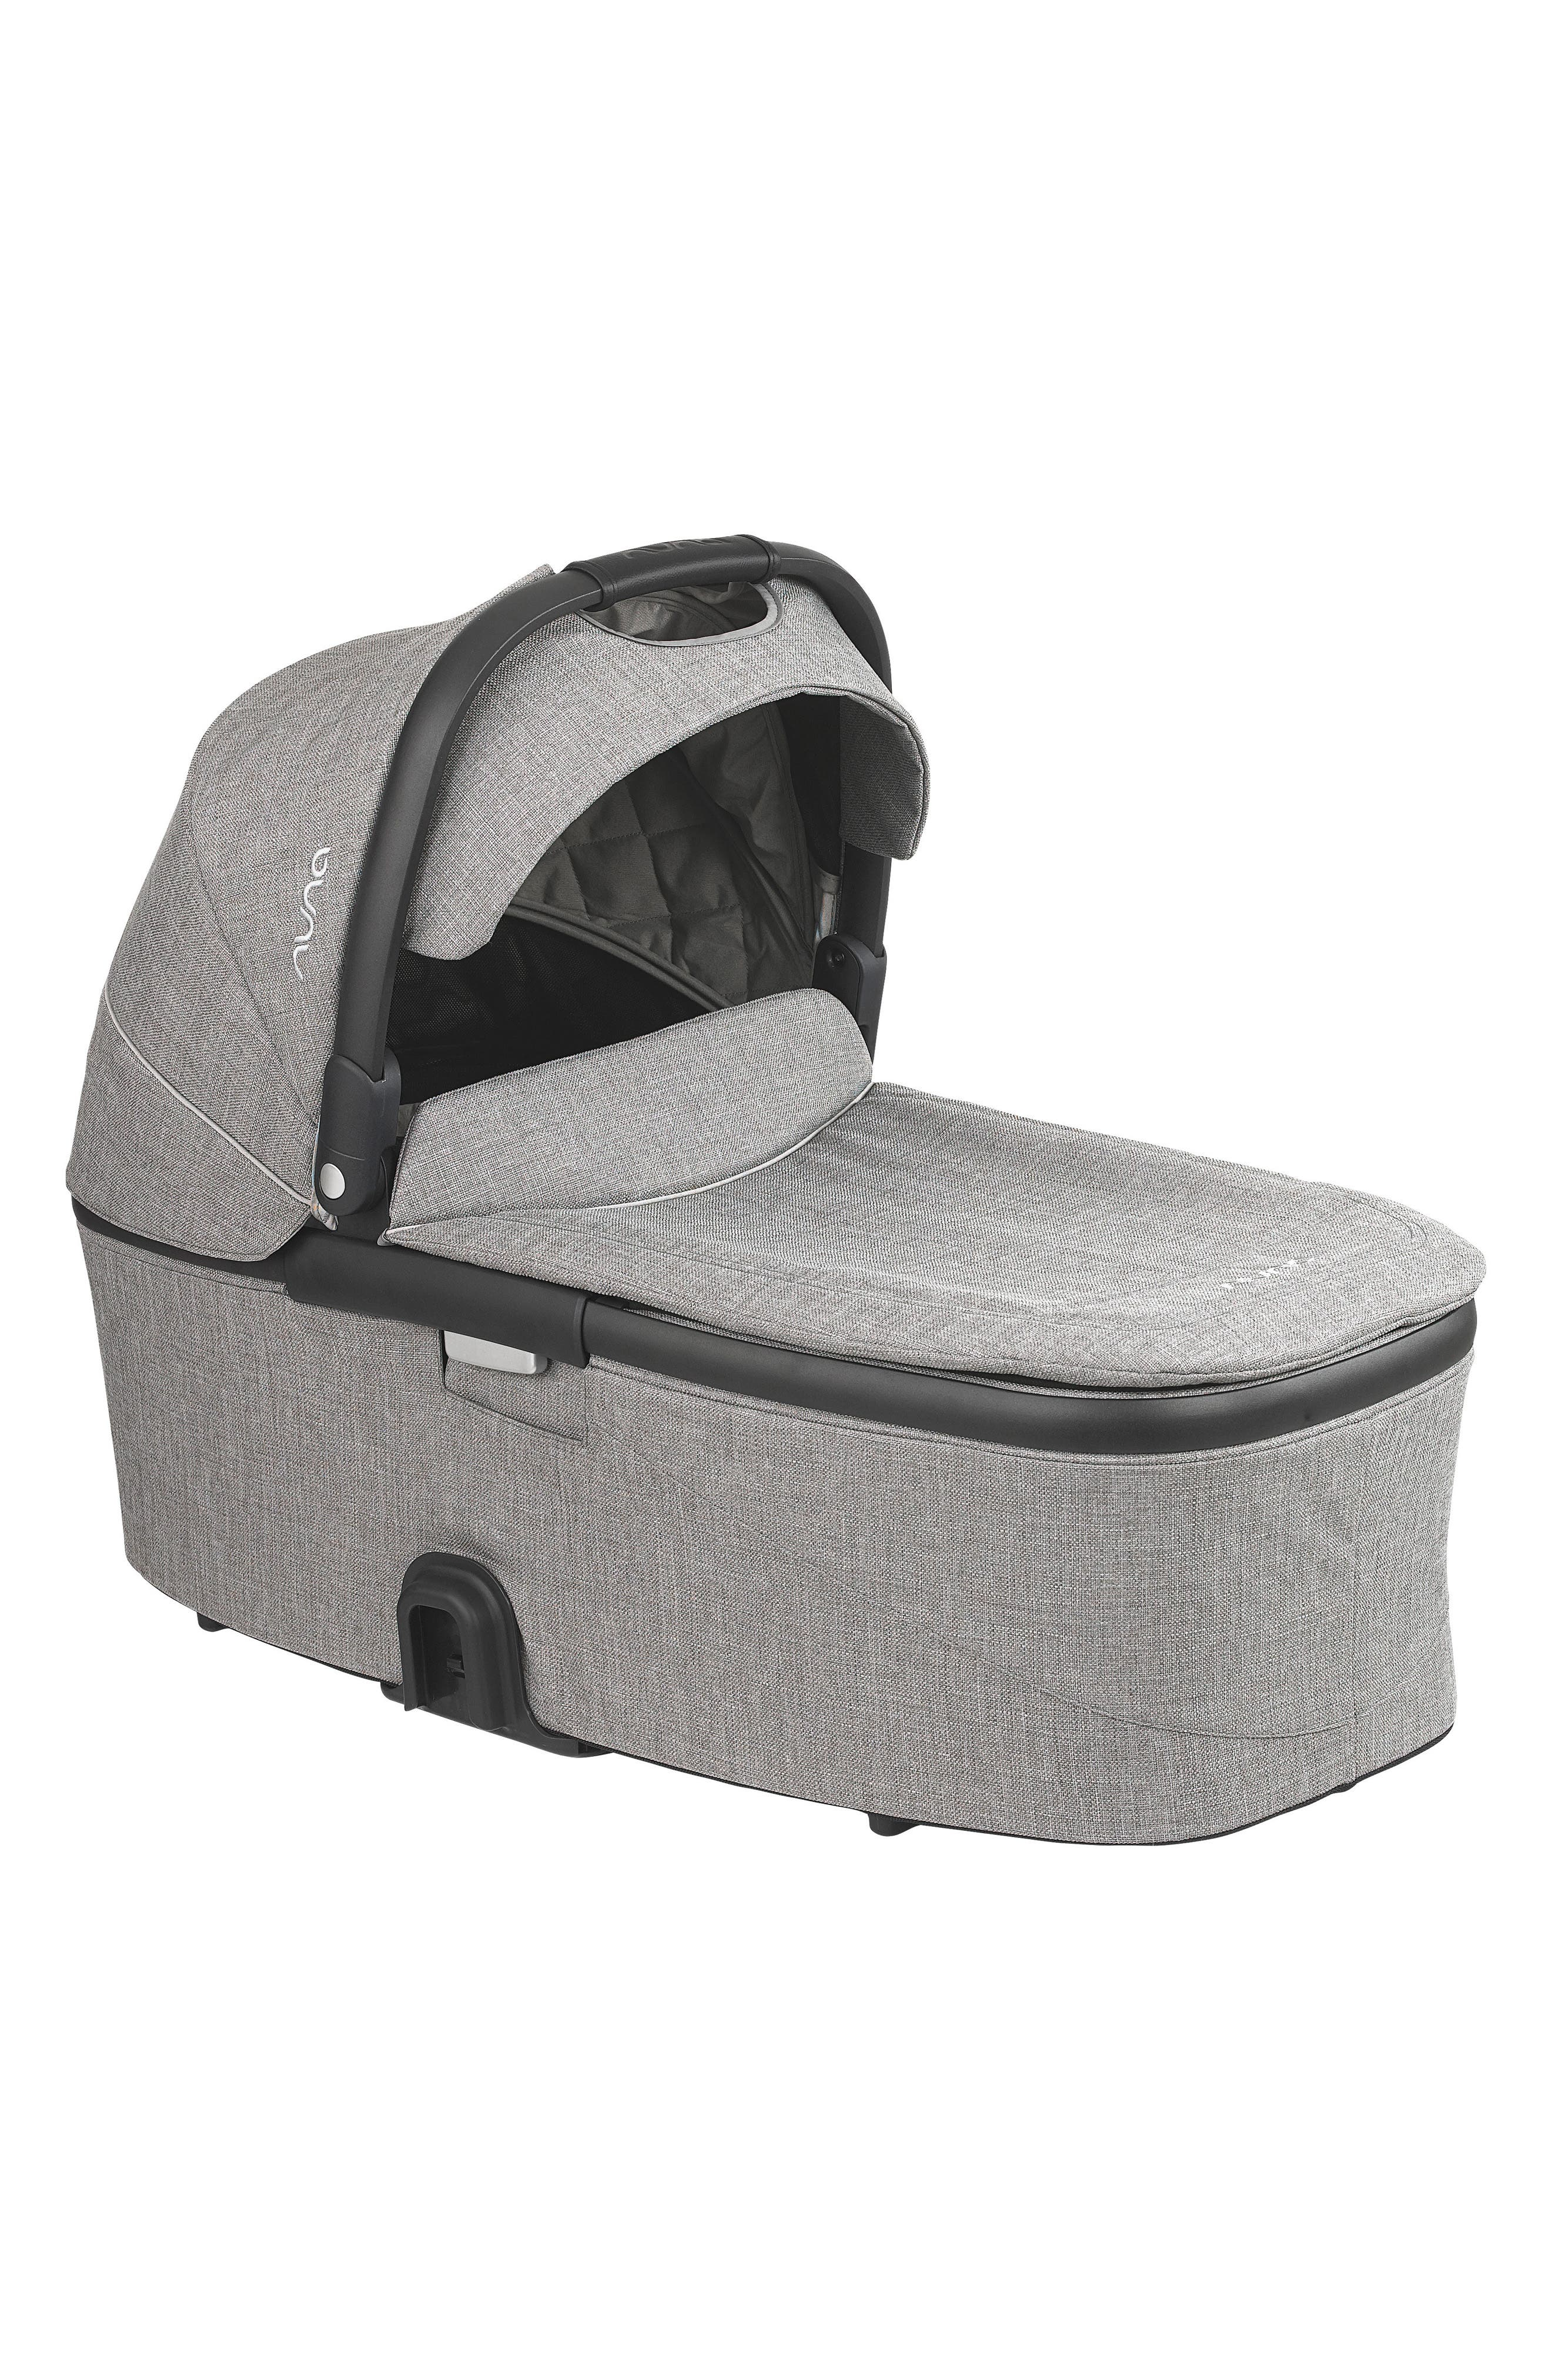 DEMI<sup>™</sup> Grow Bassinet Attachment for DEMI<sup>™</sup> Grow Stroller,                             Main thumbnail 1, color,                             Frost